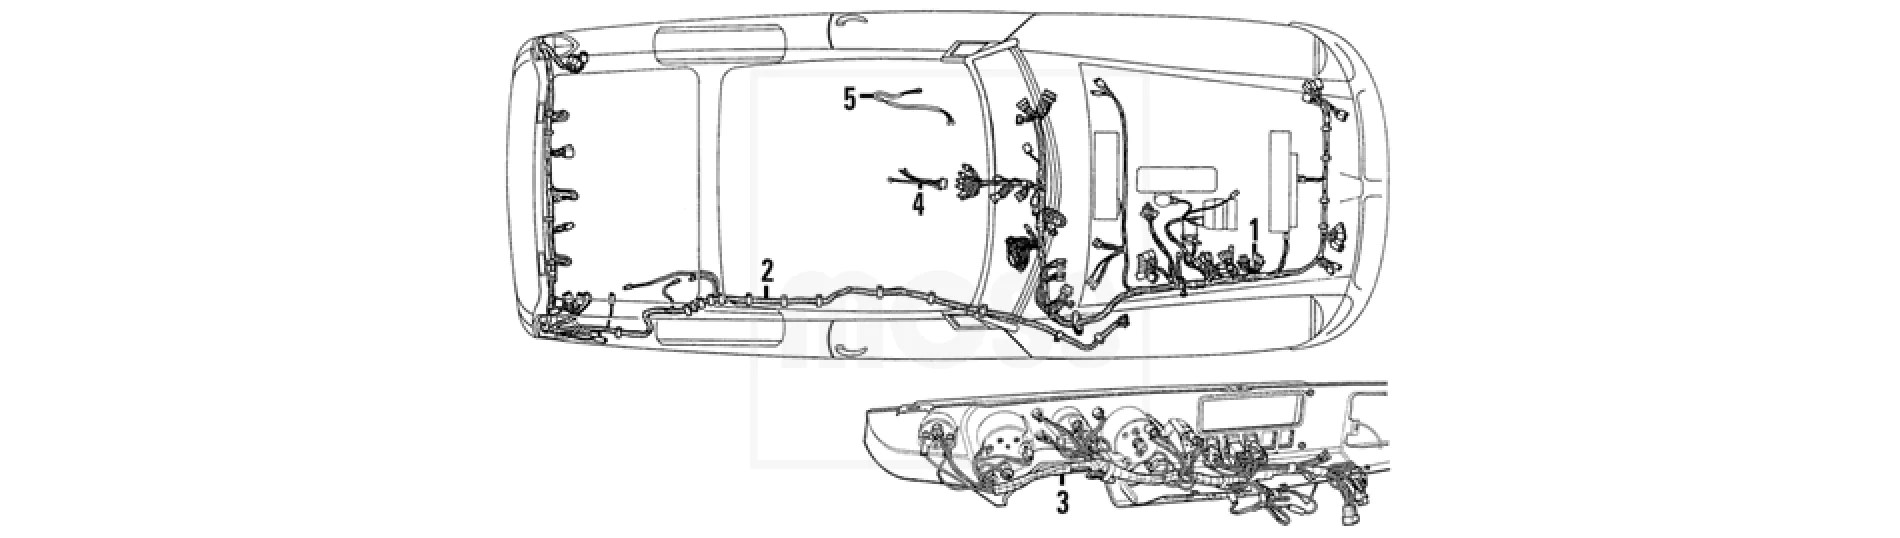 small resolution of 68 mgb wiring diagram